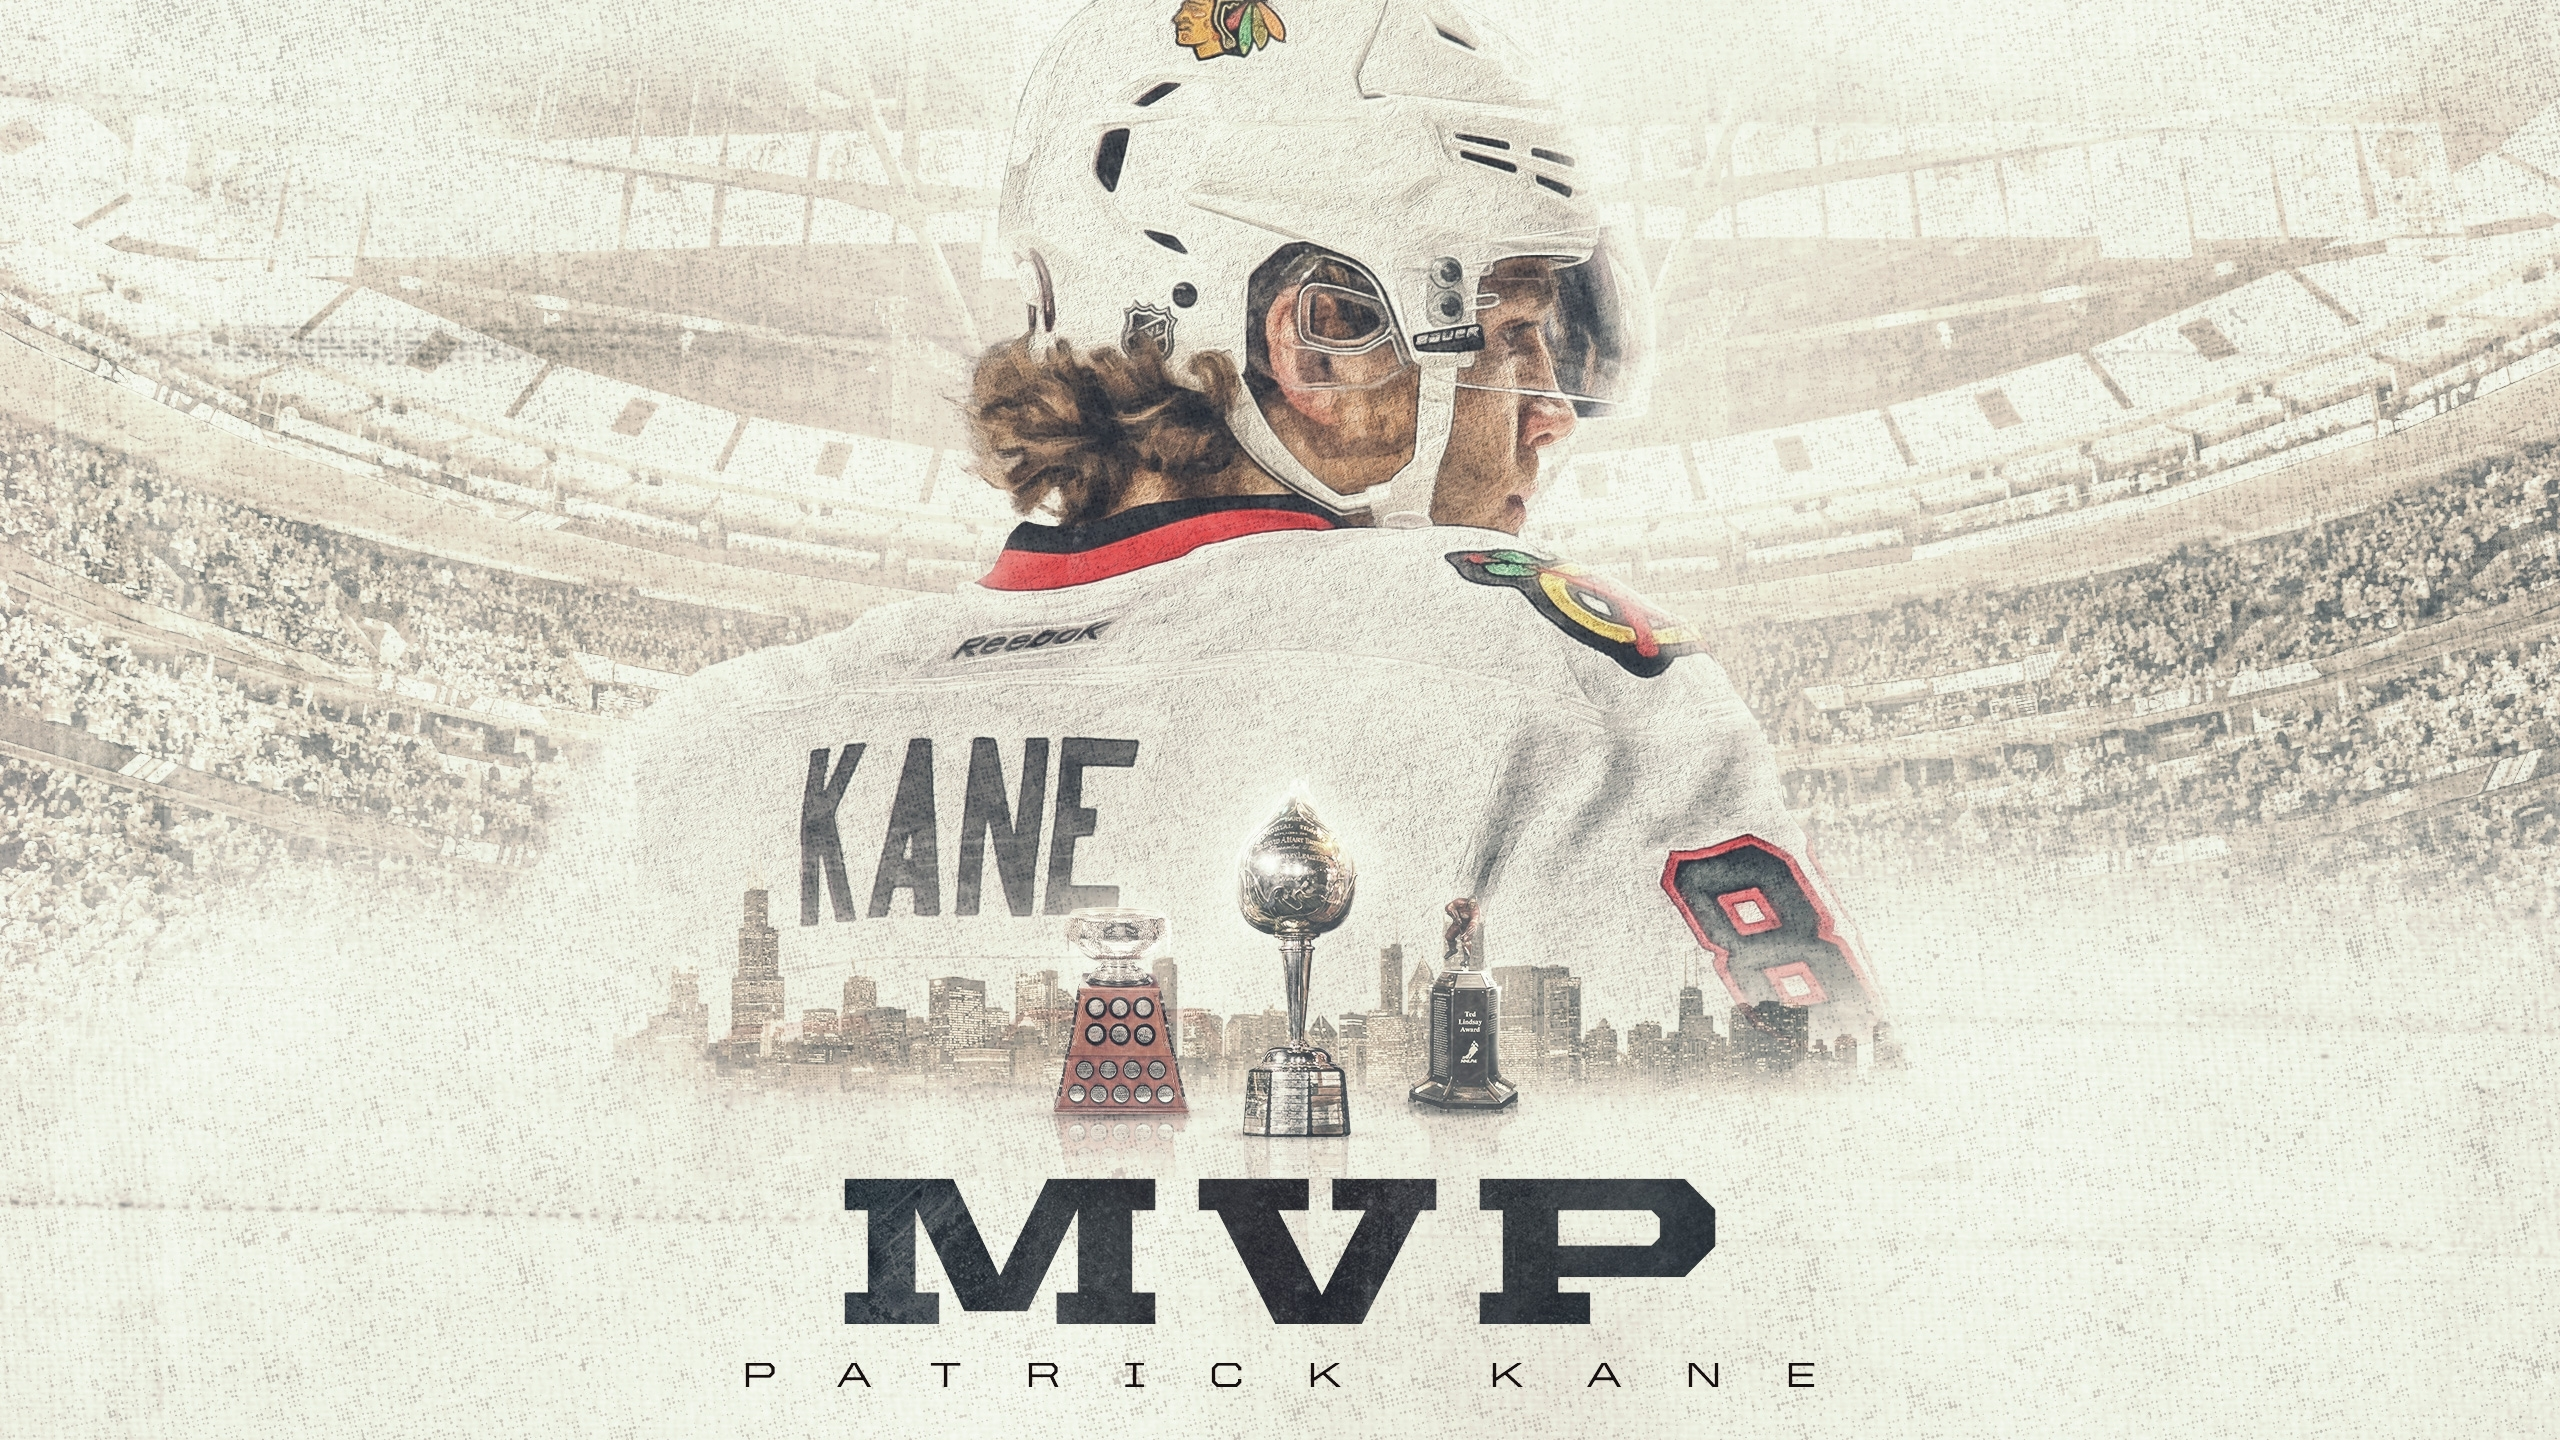 10 Top And Most Recent Chicago Blackhawks Hd Wallpaper For Desktop With FULL HD 1080p 1920 X 1080 FREE DOWNLOAD